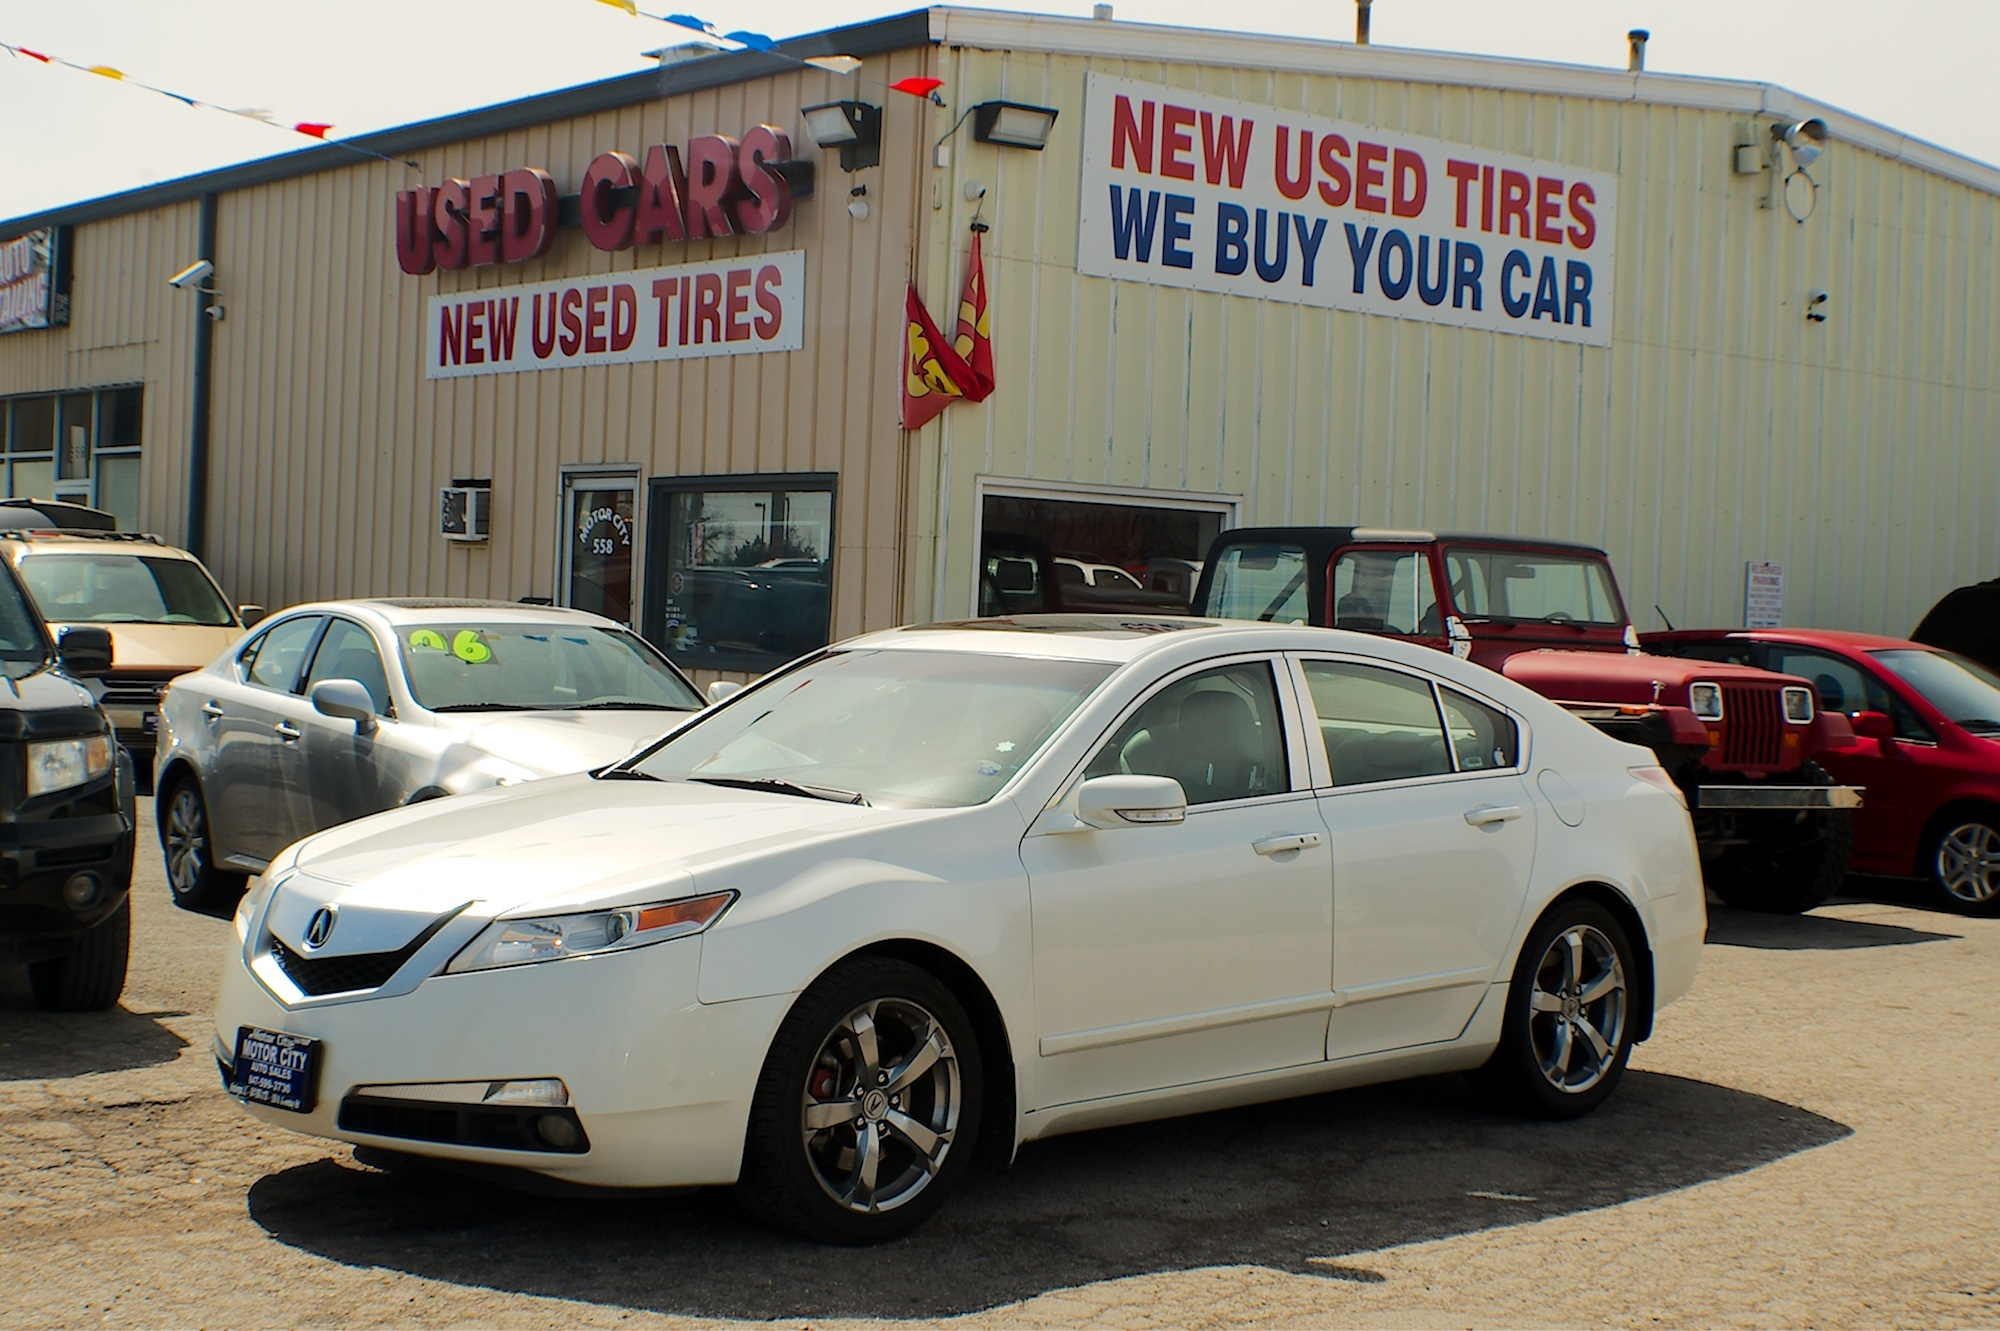 2010 Acura TL Navigation White Sedan Sale Antioch Zion Waukegan Lake County Illinois